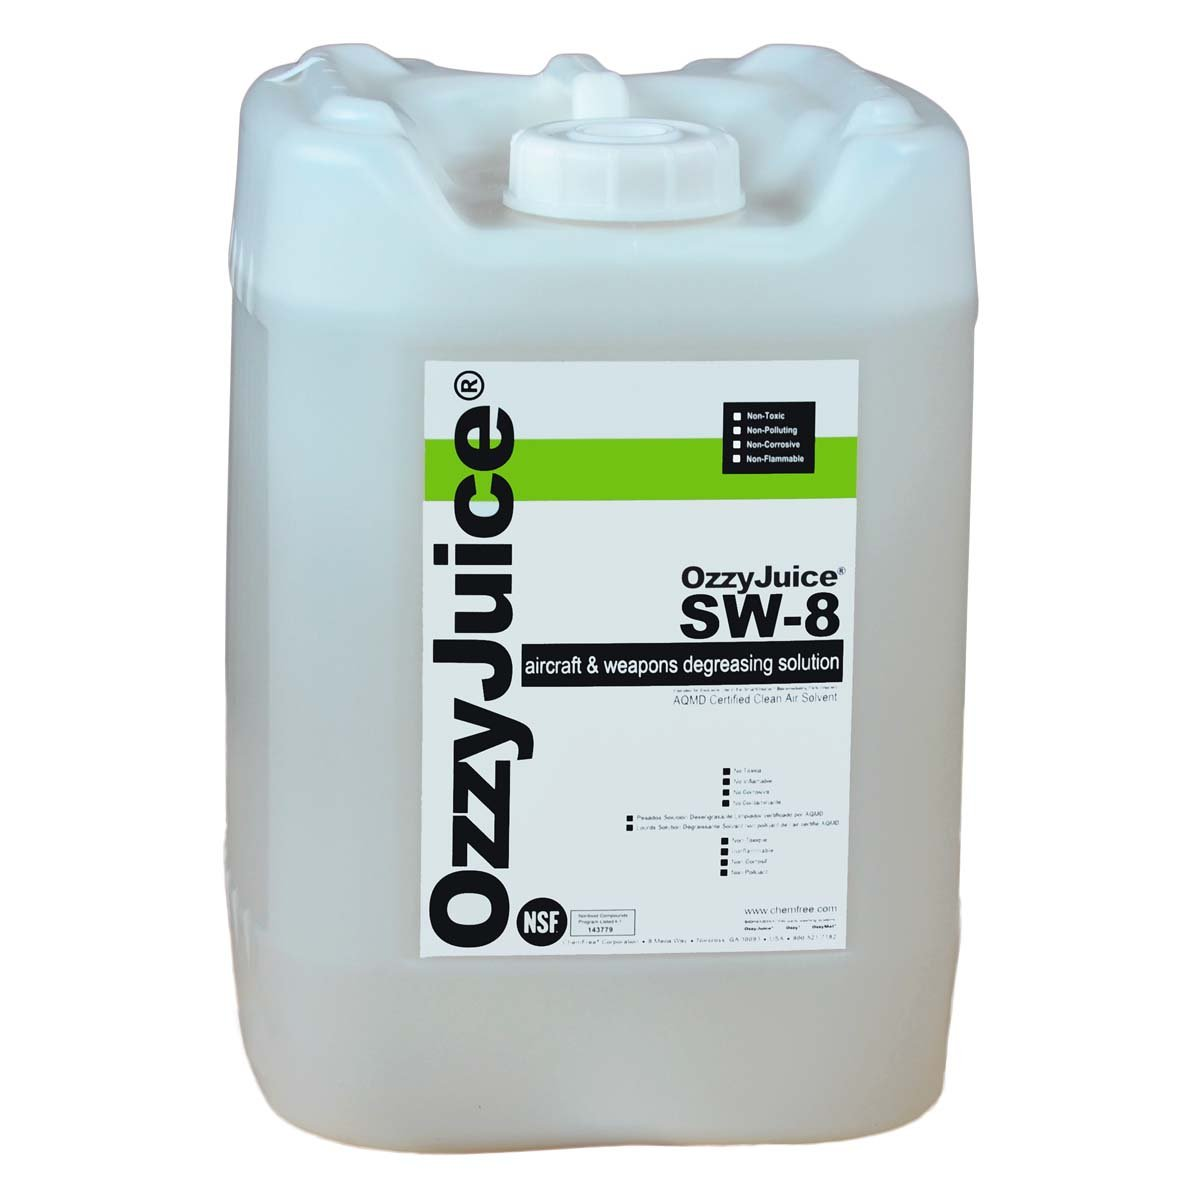 OzzyJuice Aircraft & Weapons Degreasing Solution (SW-8) for SmartWasher Parts Cleaning Systems, 5 Gallon Pail (14722)